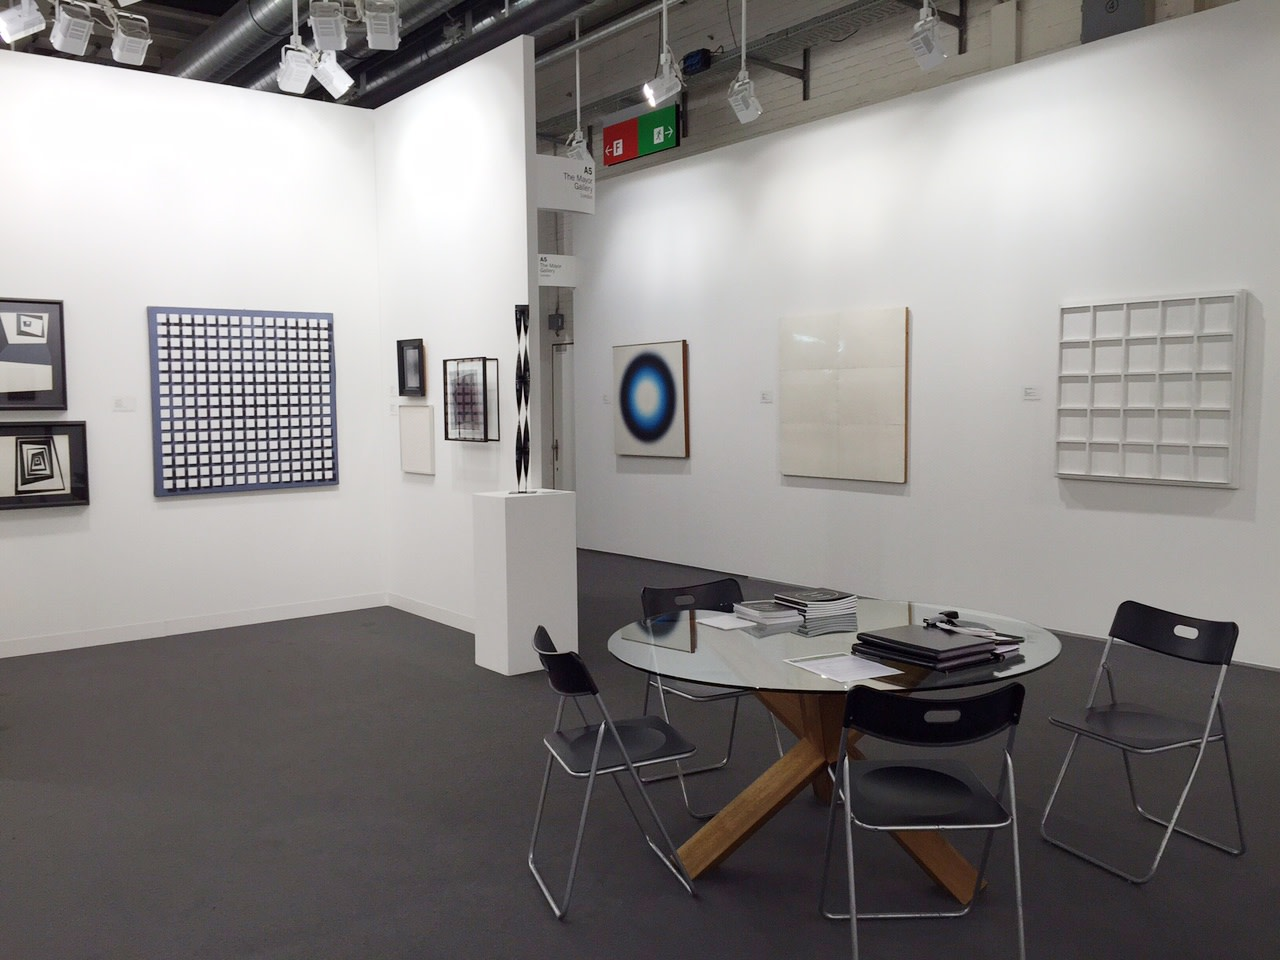 """<span class=""""link fancybox-details-link""""><a href=""""/exhibitions/317/works/image_standalone1601/"""">View Detail Page</a></span><p>ART BASEL 2015, Installation view</p>"""